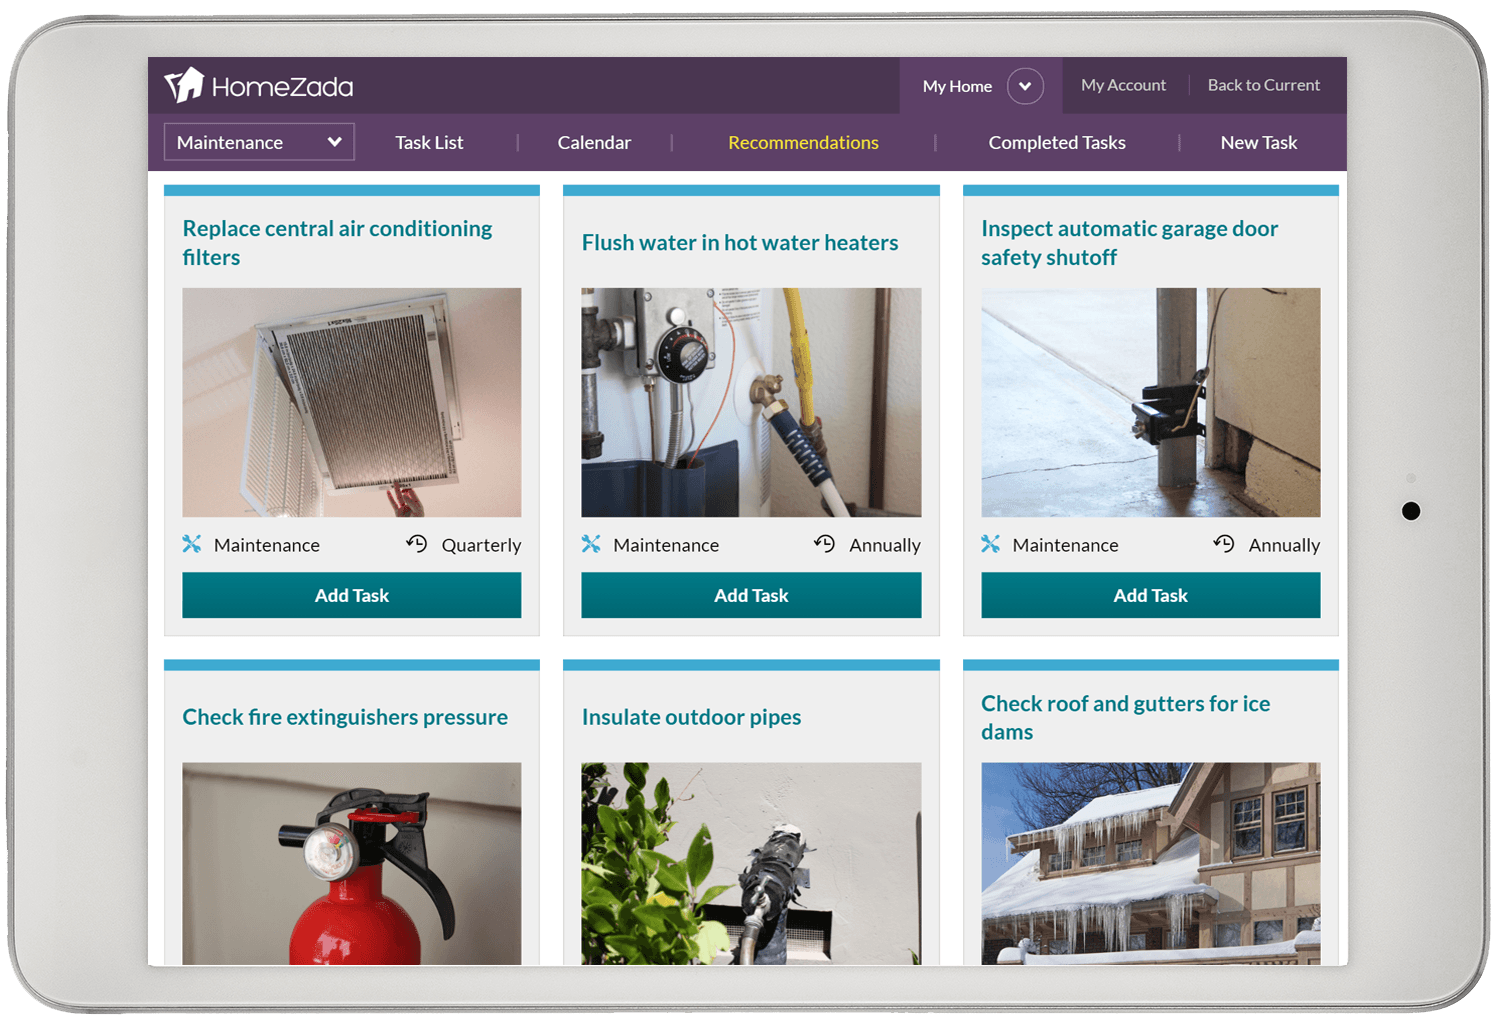 Homezada home maintenance recommendations